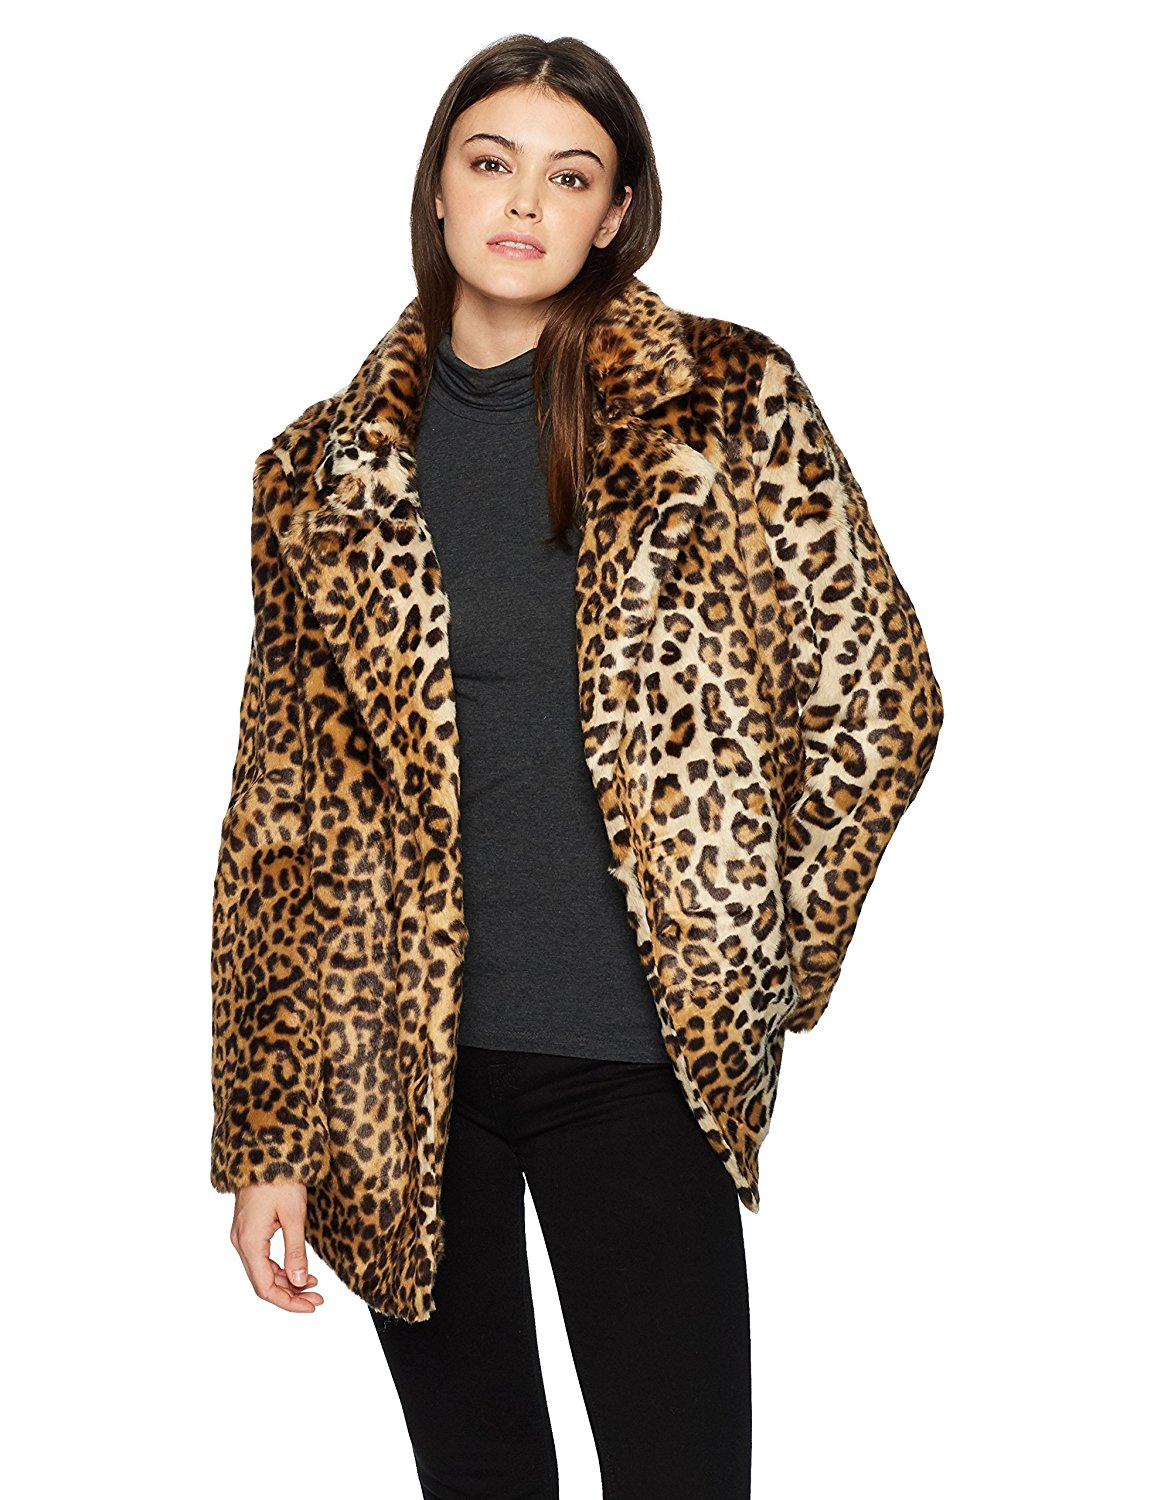 d6dfea353 Cheap Red Leopard Print Fur Coat, find Red Leopard Print Fur Coat ...